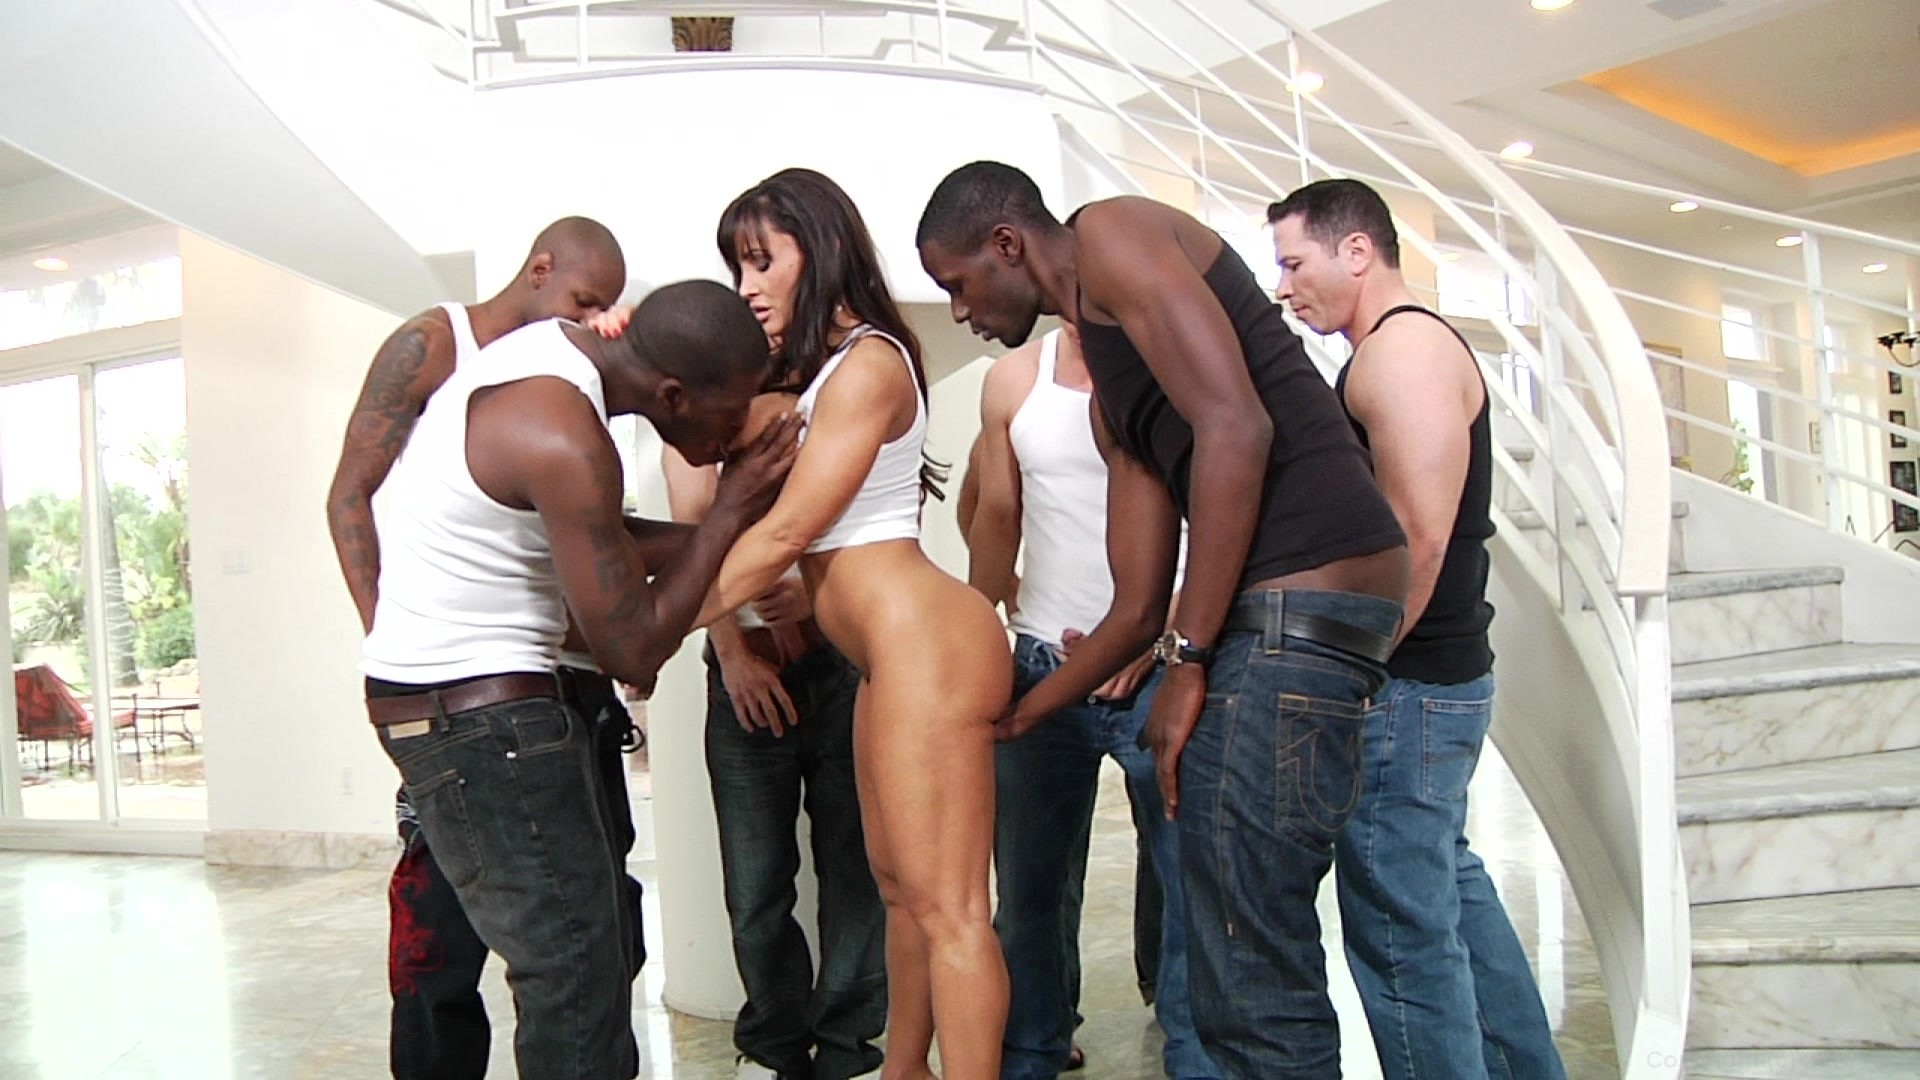 trailer slut entertains group of men